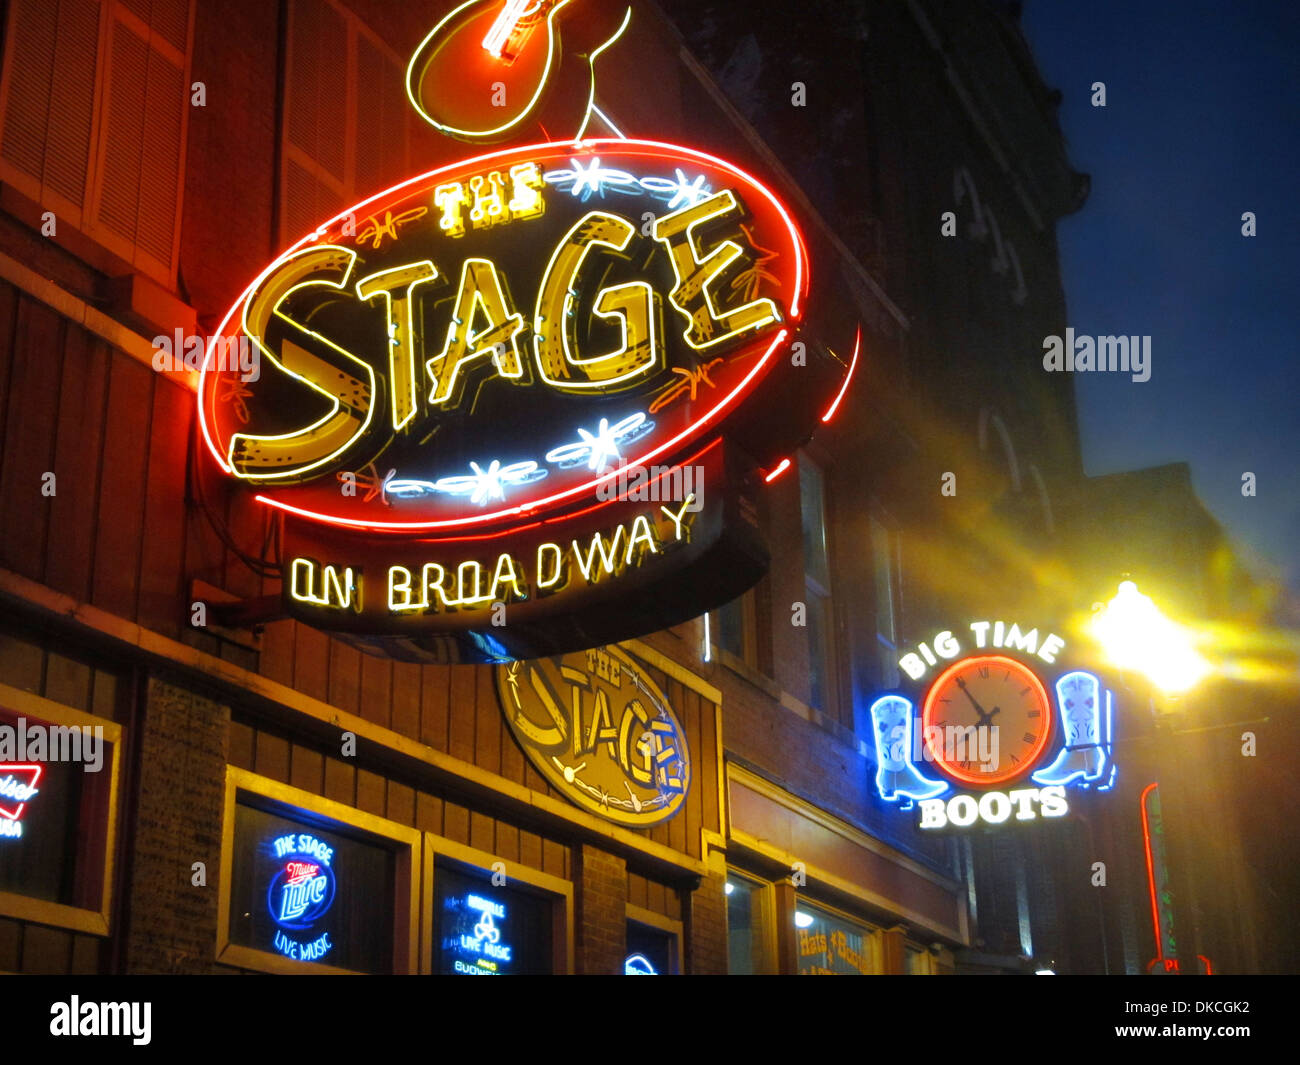 Neon signs outside Honky Tonk bars on Broadway in downtown Nashville Tennessee. - Stock Image